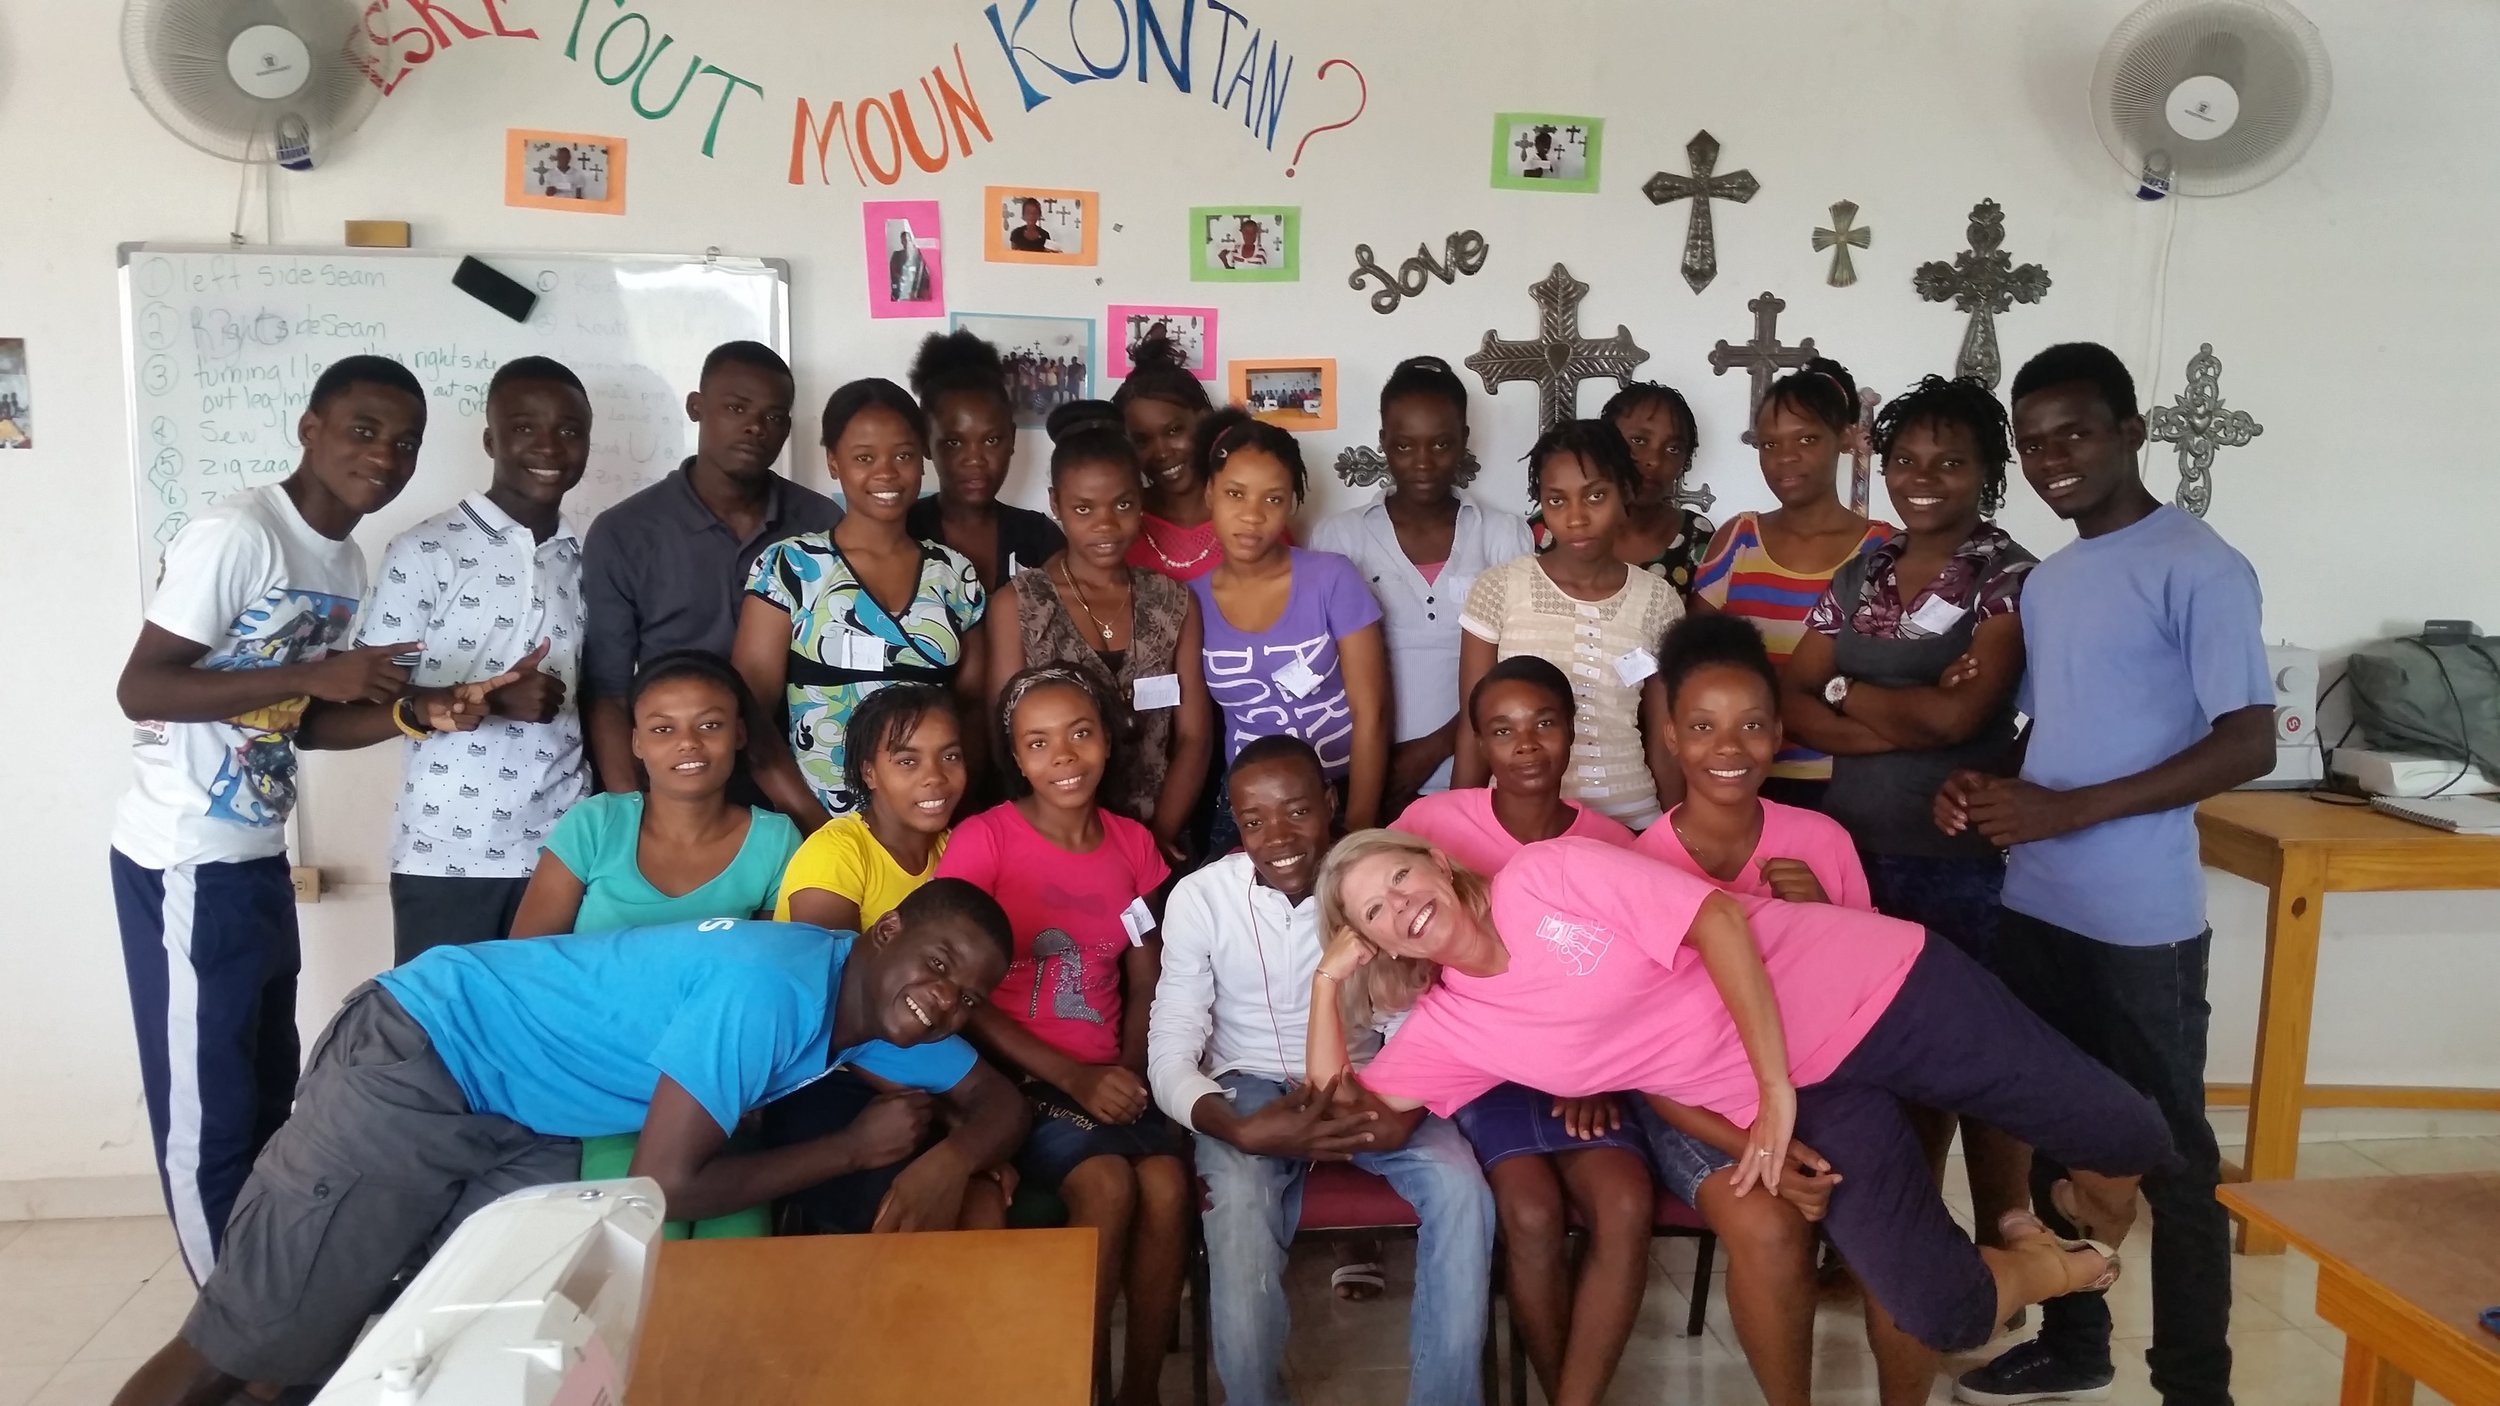 Sally with students from the sewing school